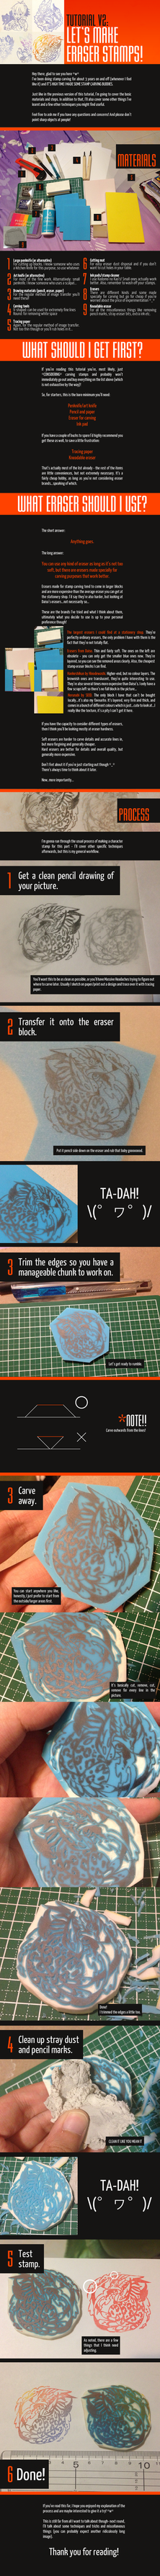 Let's make: ERASER STAMPS V2 by countercanon